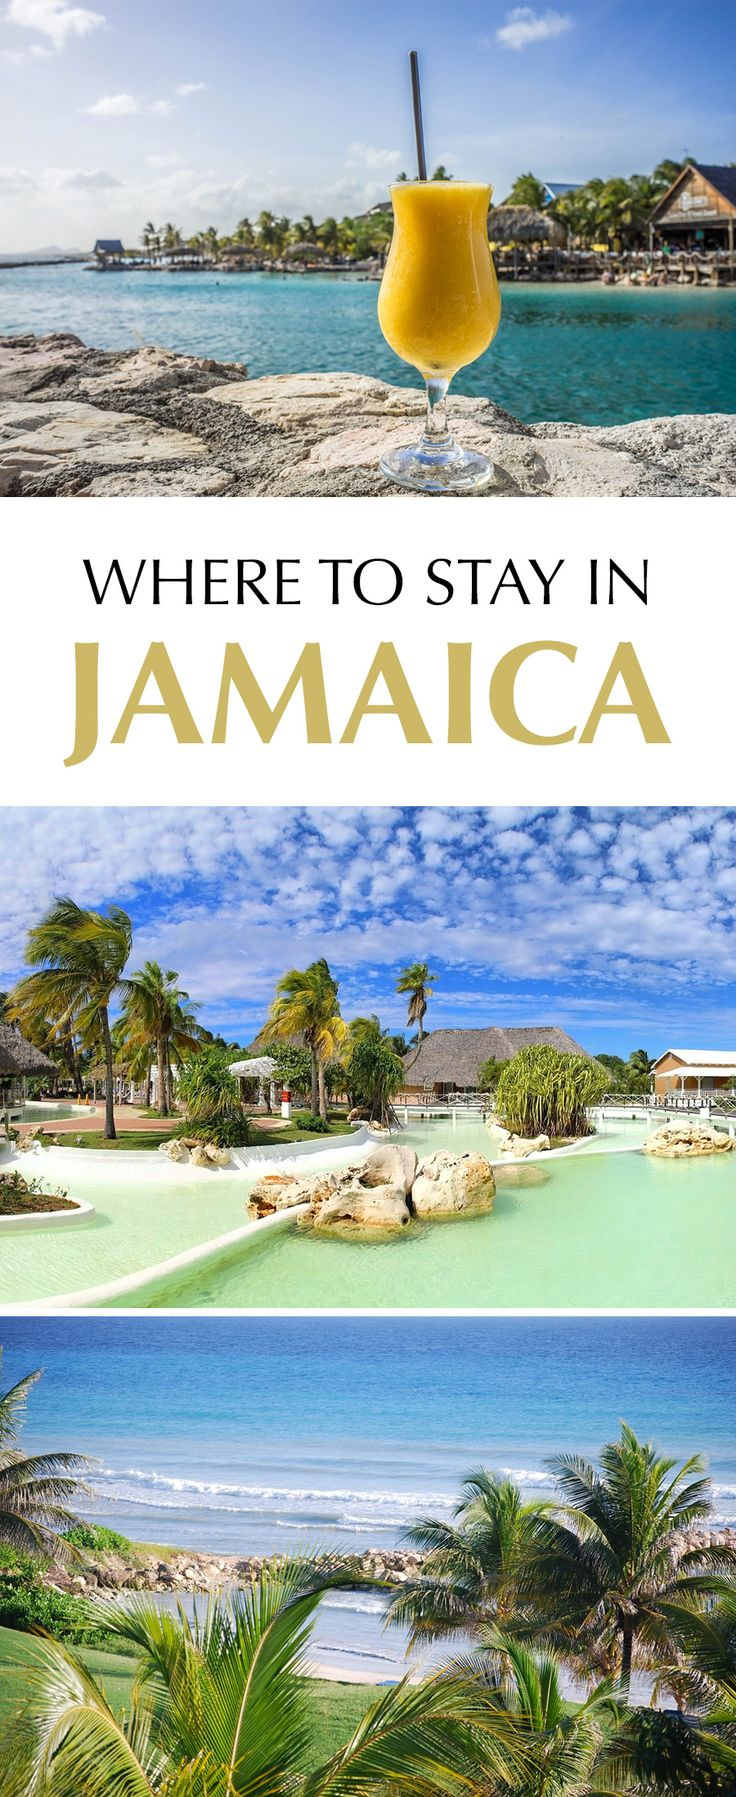 Don't know where to stay in Jamaica? Check out our travel guide to the best hotels & areas for first timers, families, honeymooners, nightlife, foodies, sightseeing, and budget backpackers. It's the ultimate list of the best places to stay in Jamaica.